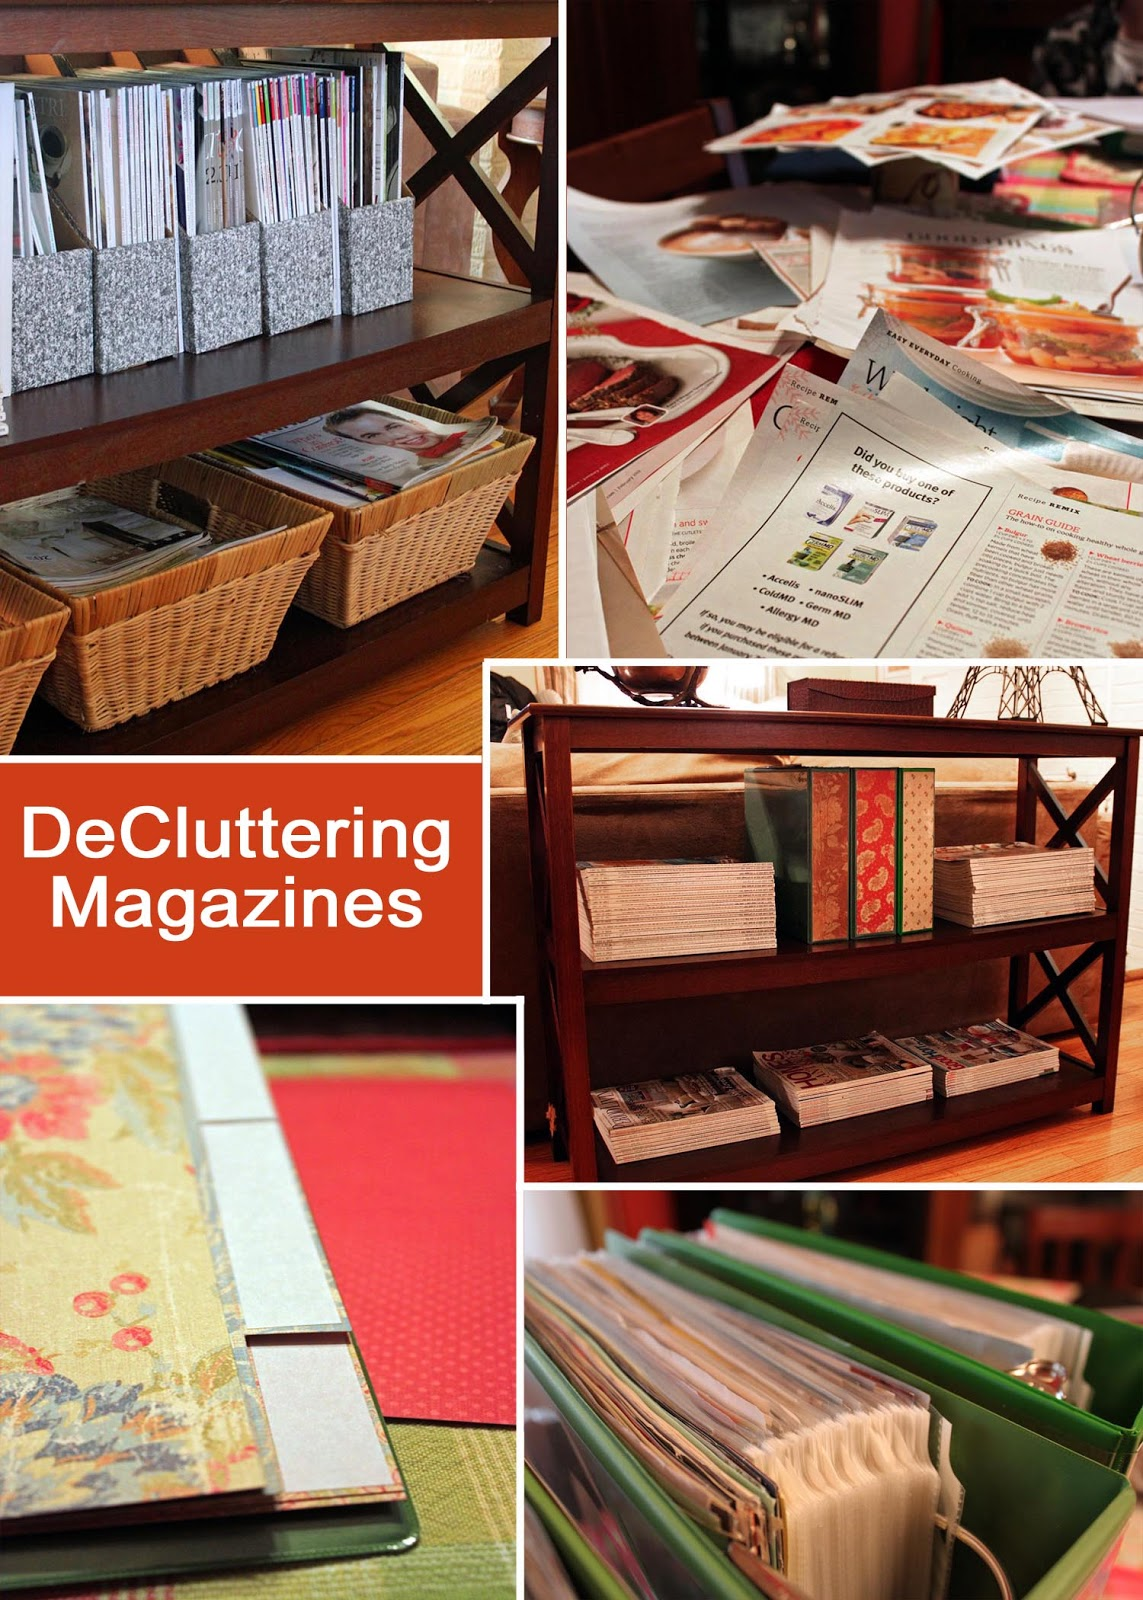 How to Organize Magazines advise